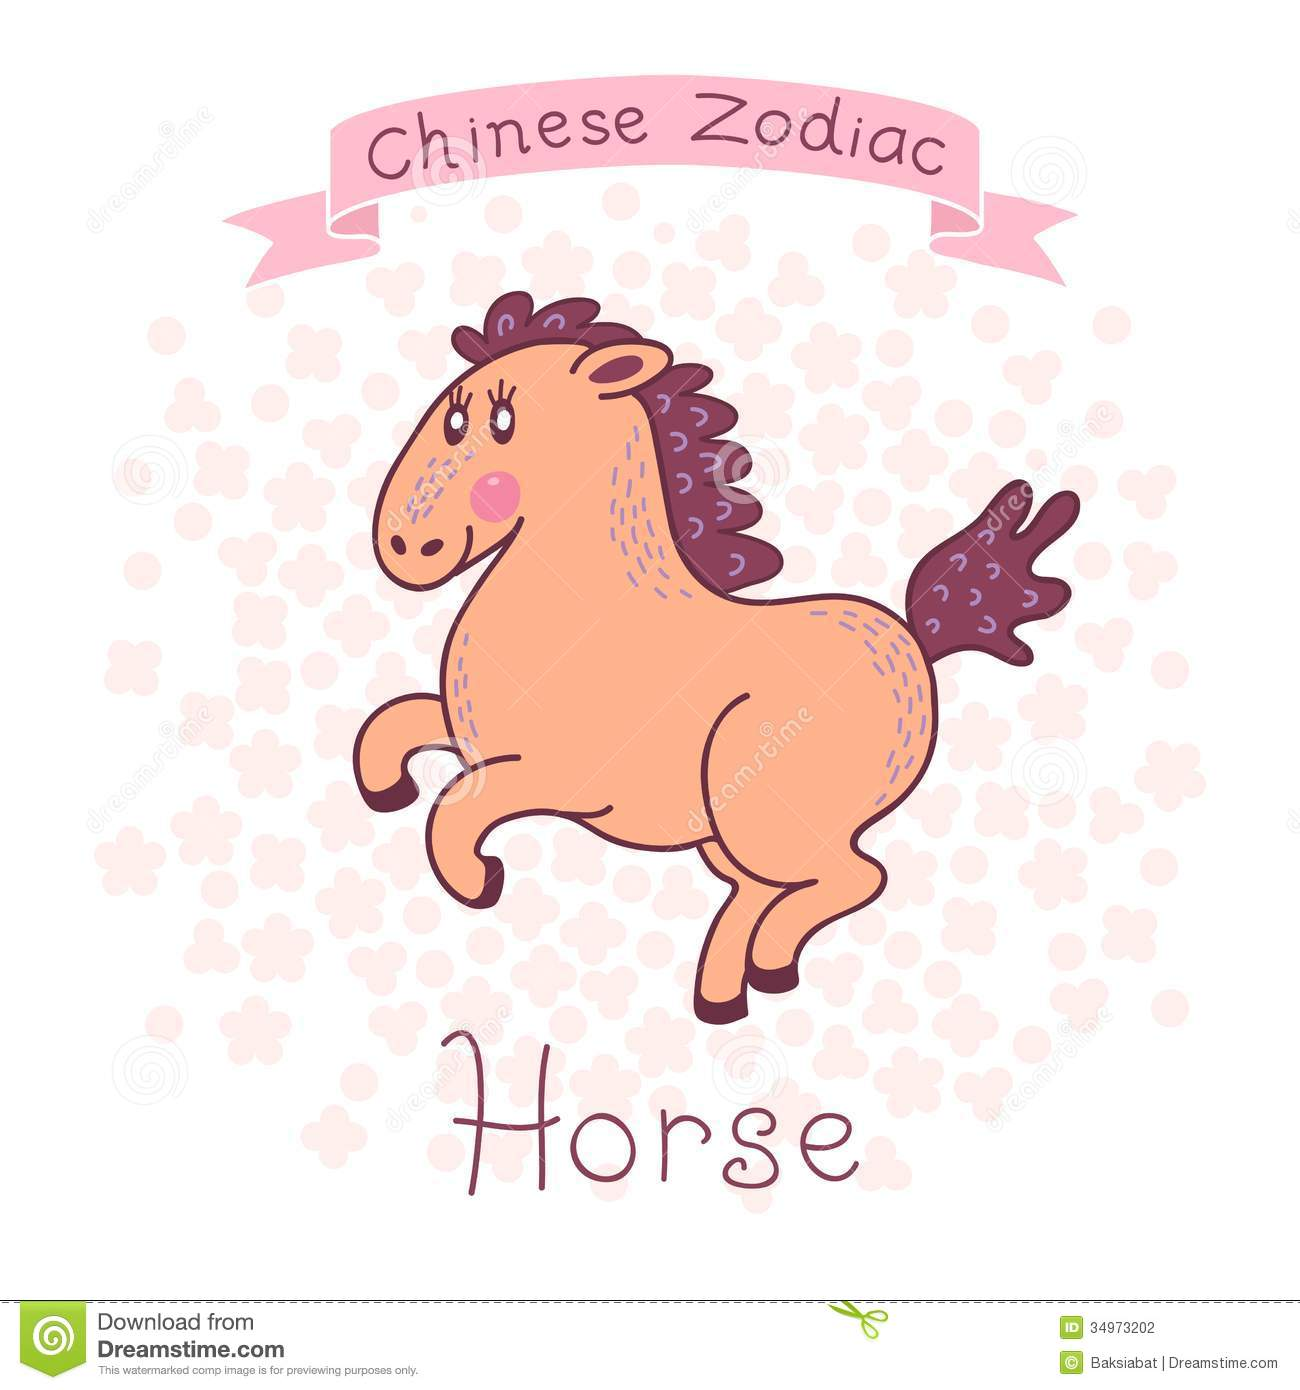 Horse Chinese Zodiac Signs